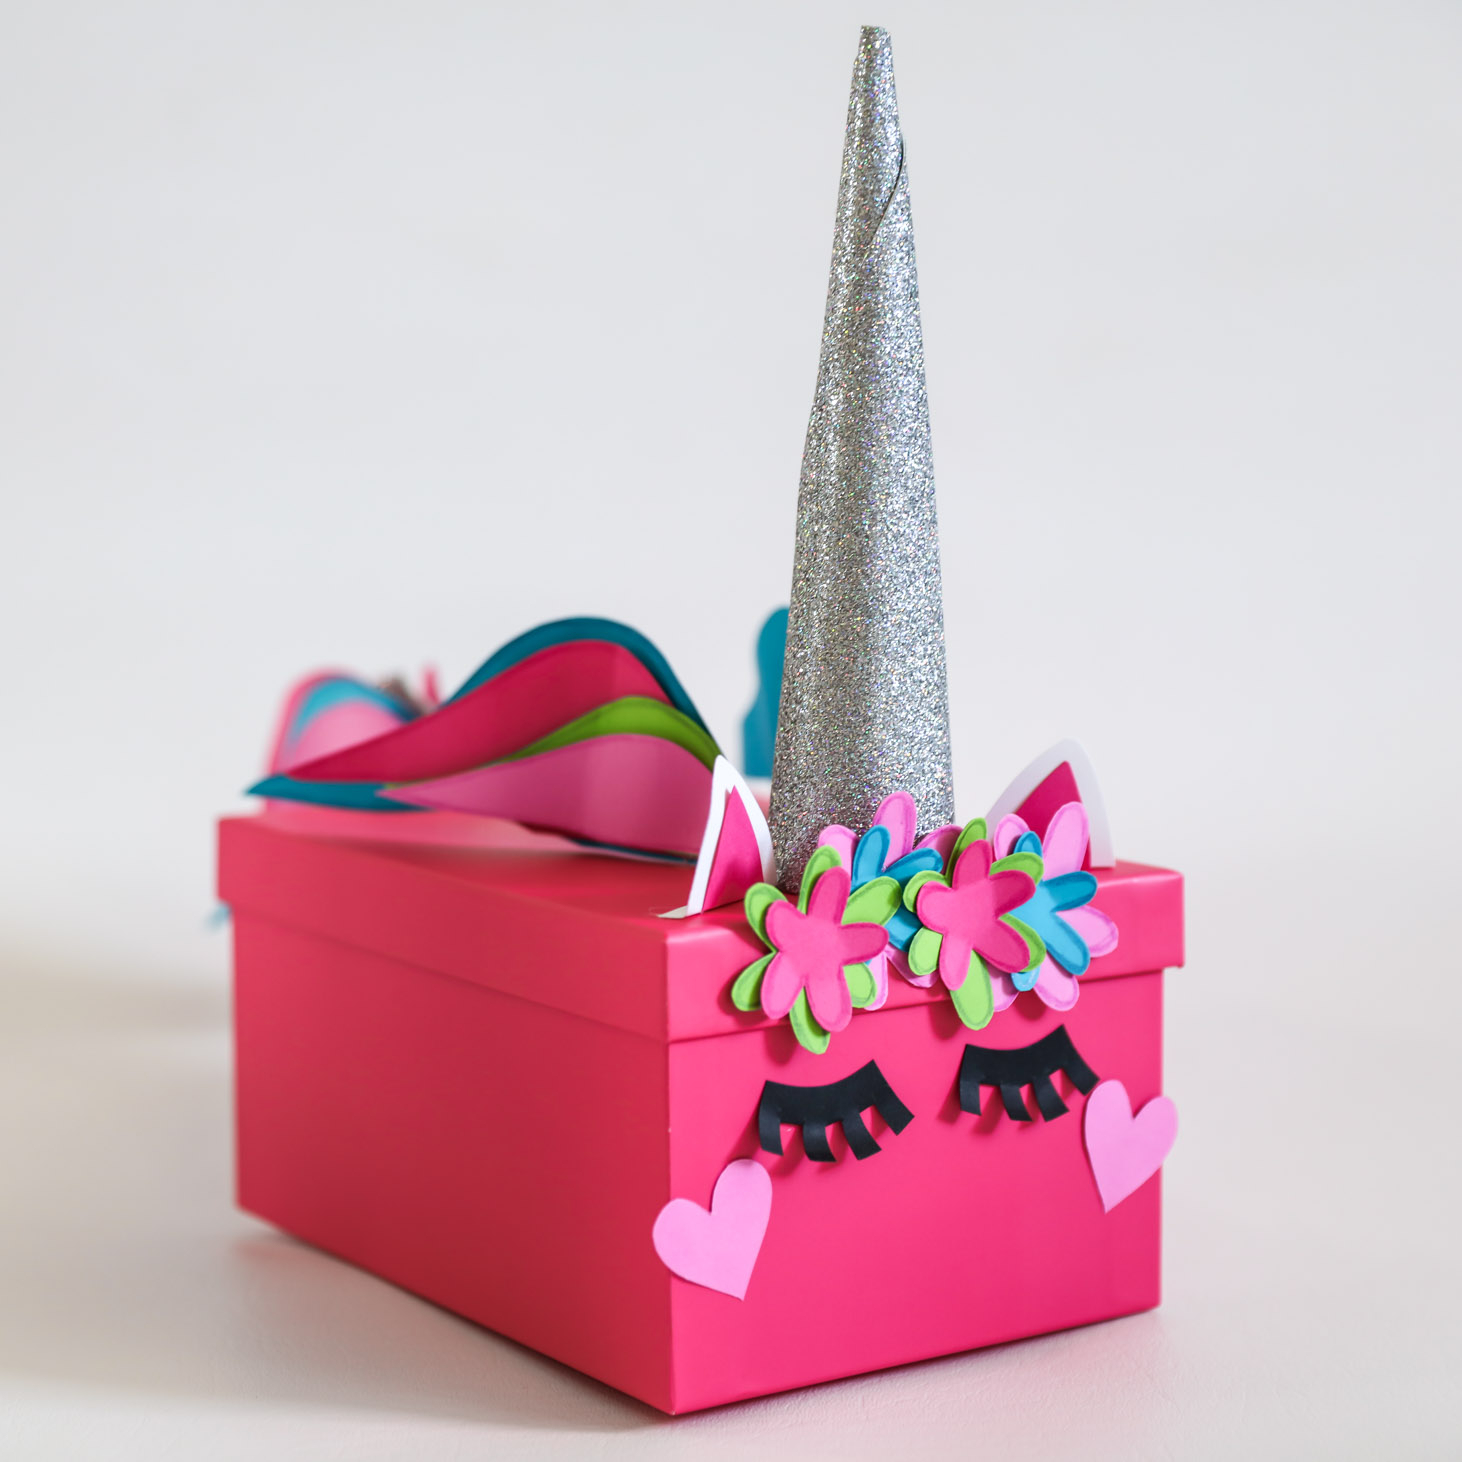 10 Trendy Out Of The Box Valentines Day Ideas valentines box ideas step by step unicorn robot more lil luna 2021